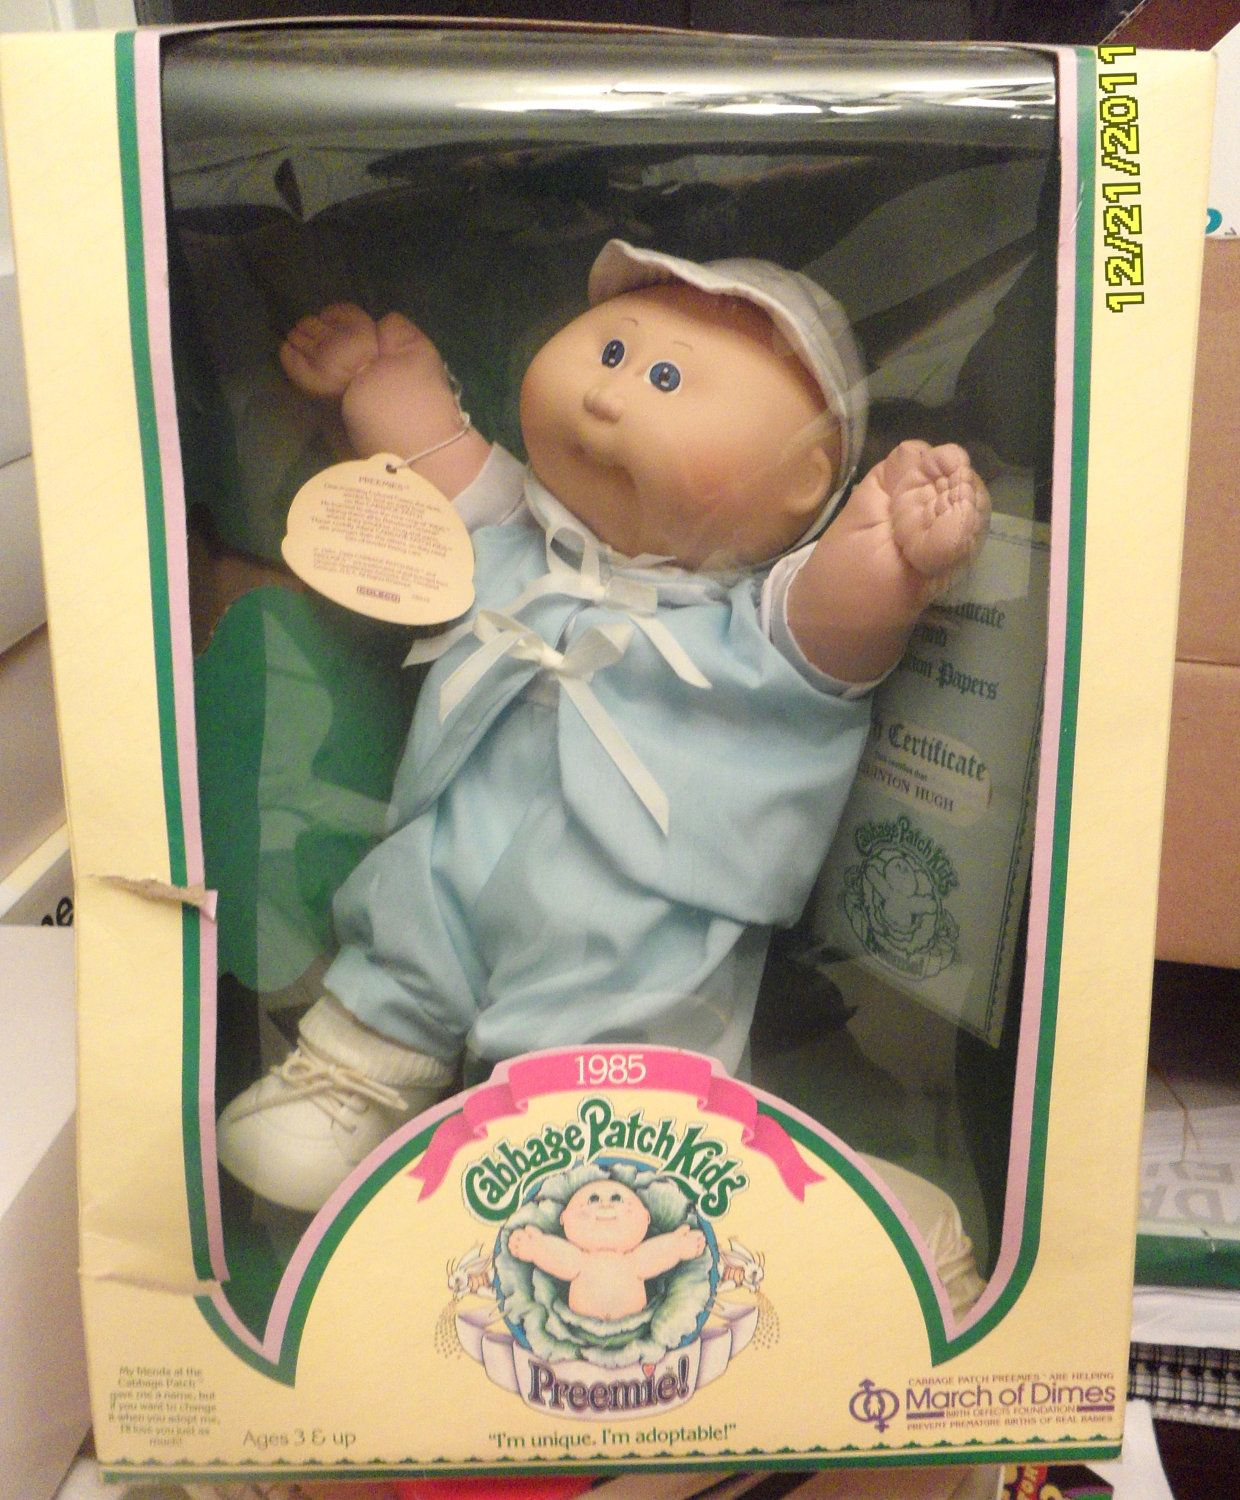 Cabbage Patch Preemie 1985 Vintage Toys Cabbage Patch Kids Cabbage Patch Kids Dolls